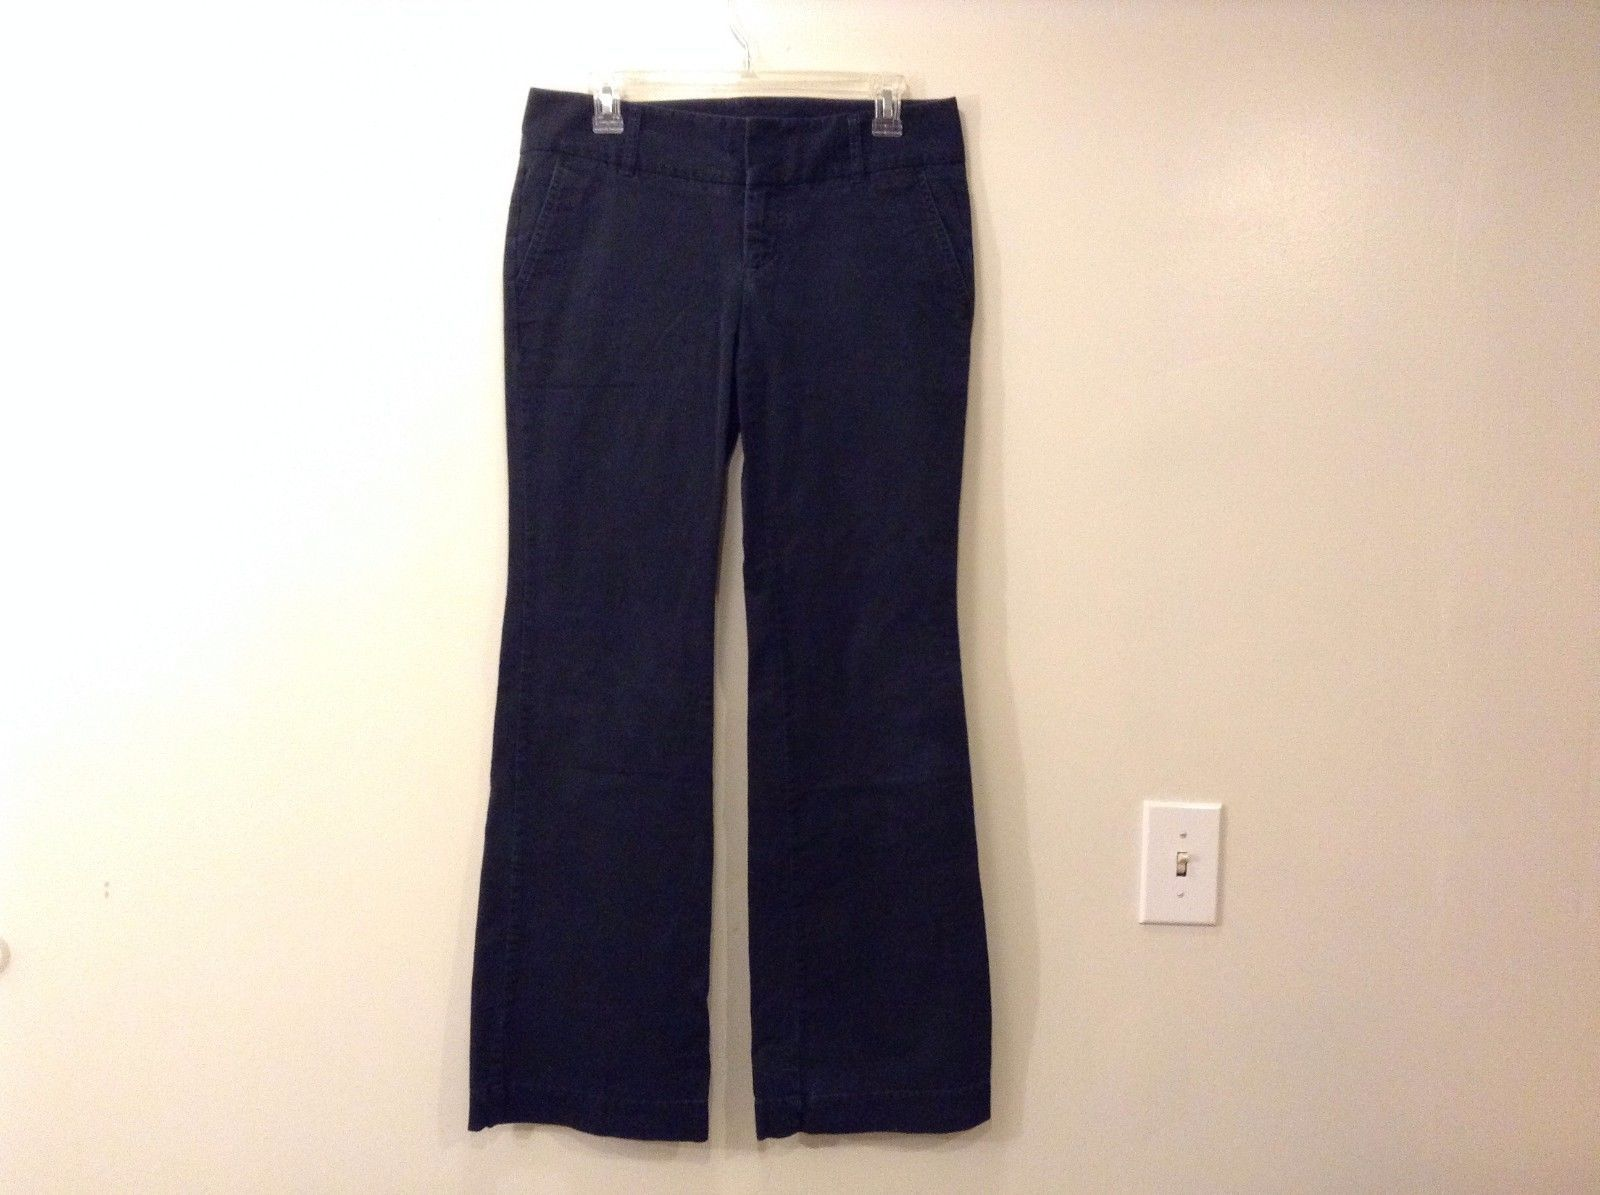 Boys Levi's 505 Regular Jeans Dark Blue 14 Slim 100% Cotton Excellent Condition